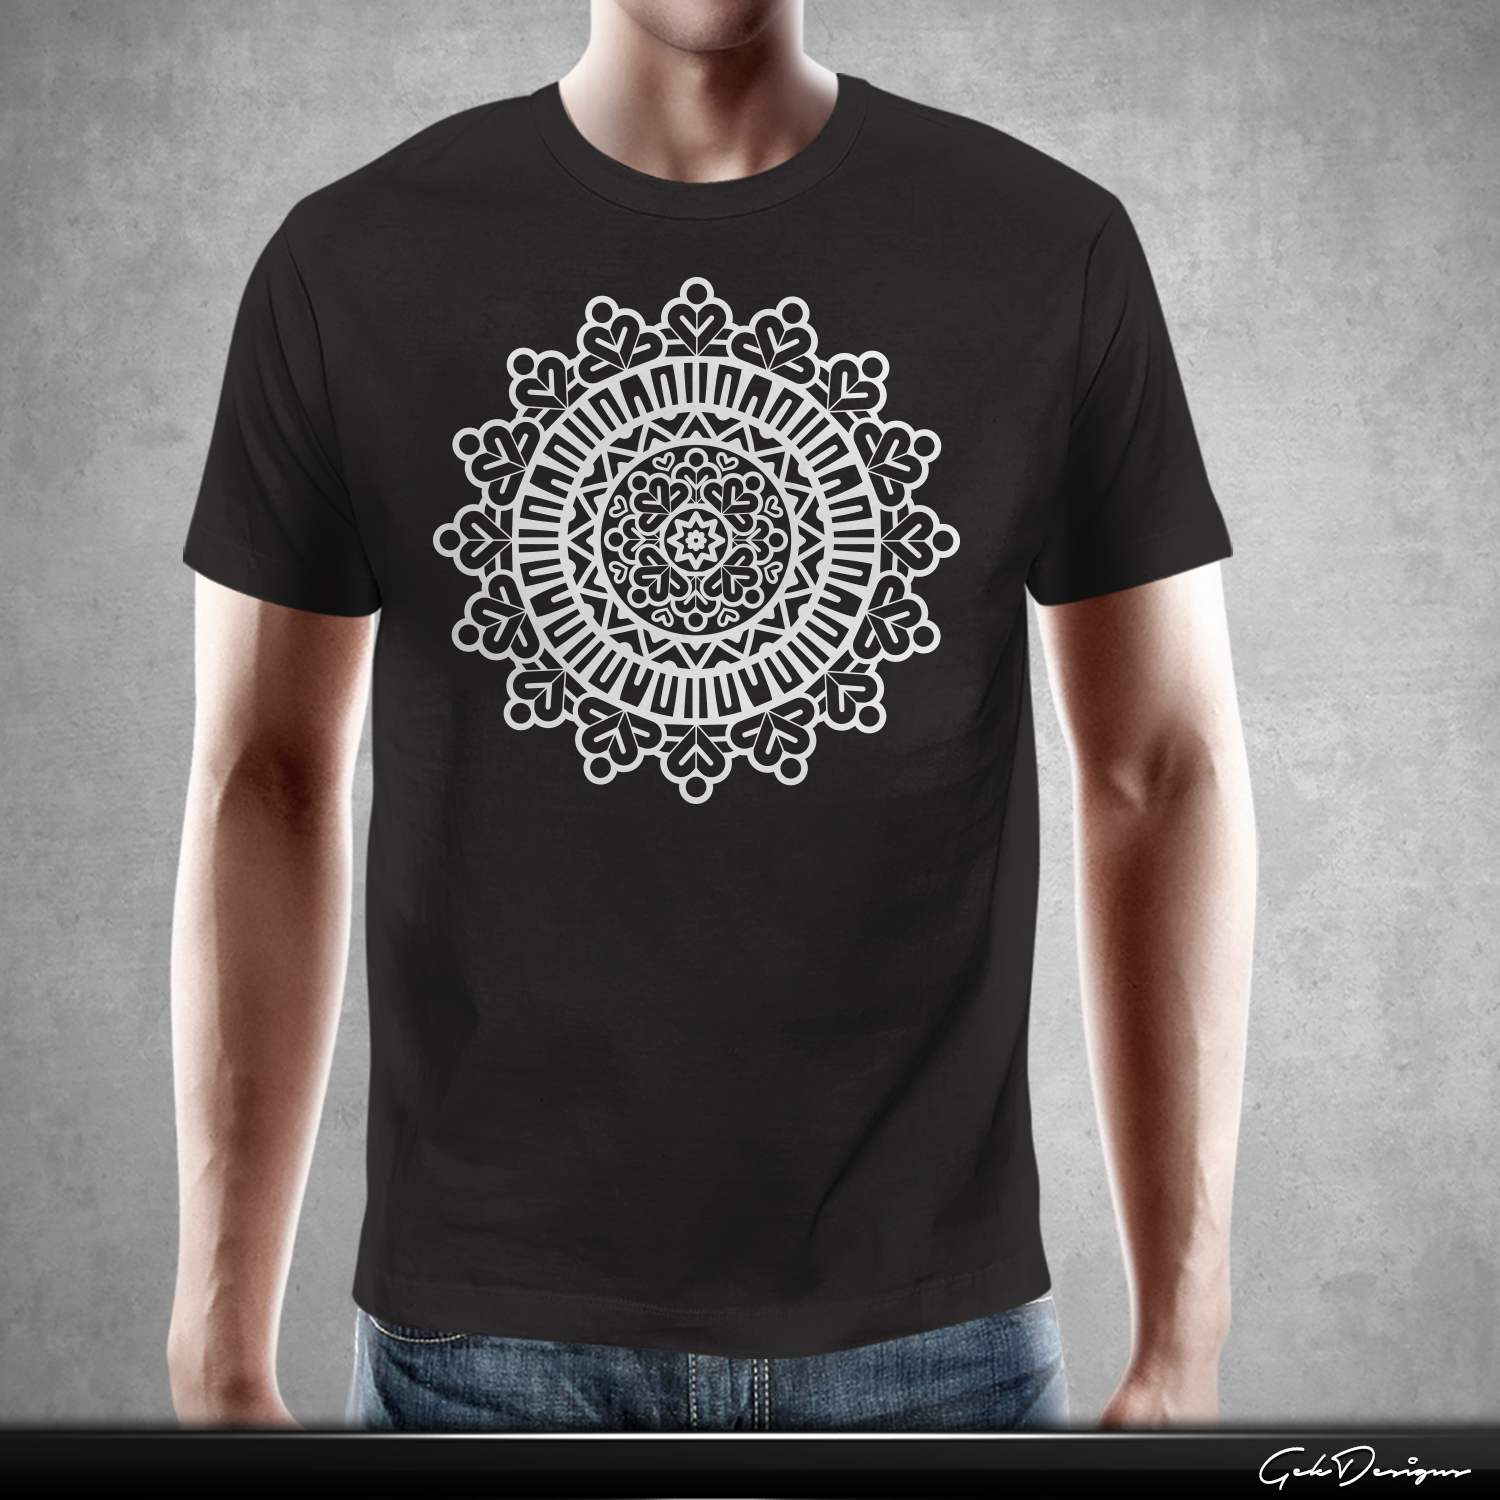 Playful modern t shirt design for 2be1 yoga by gek for Modern t shirt designs